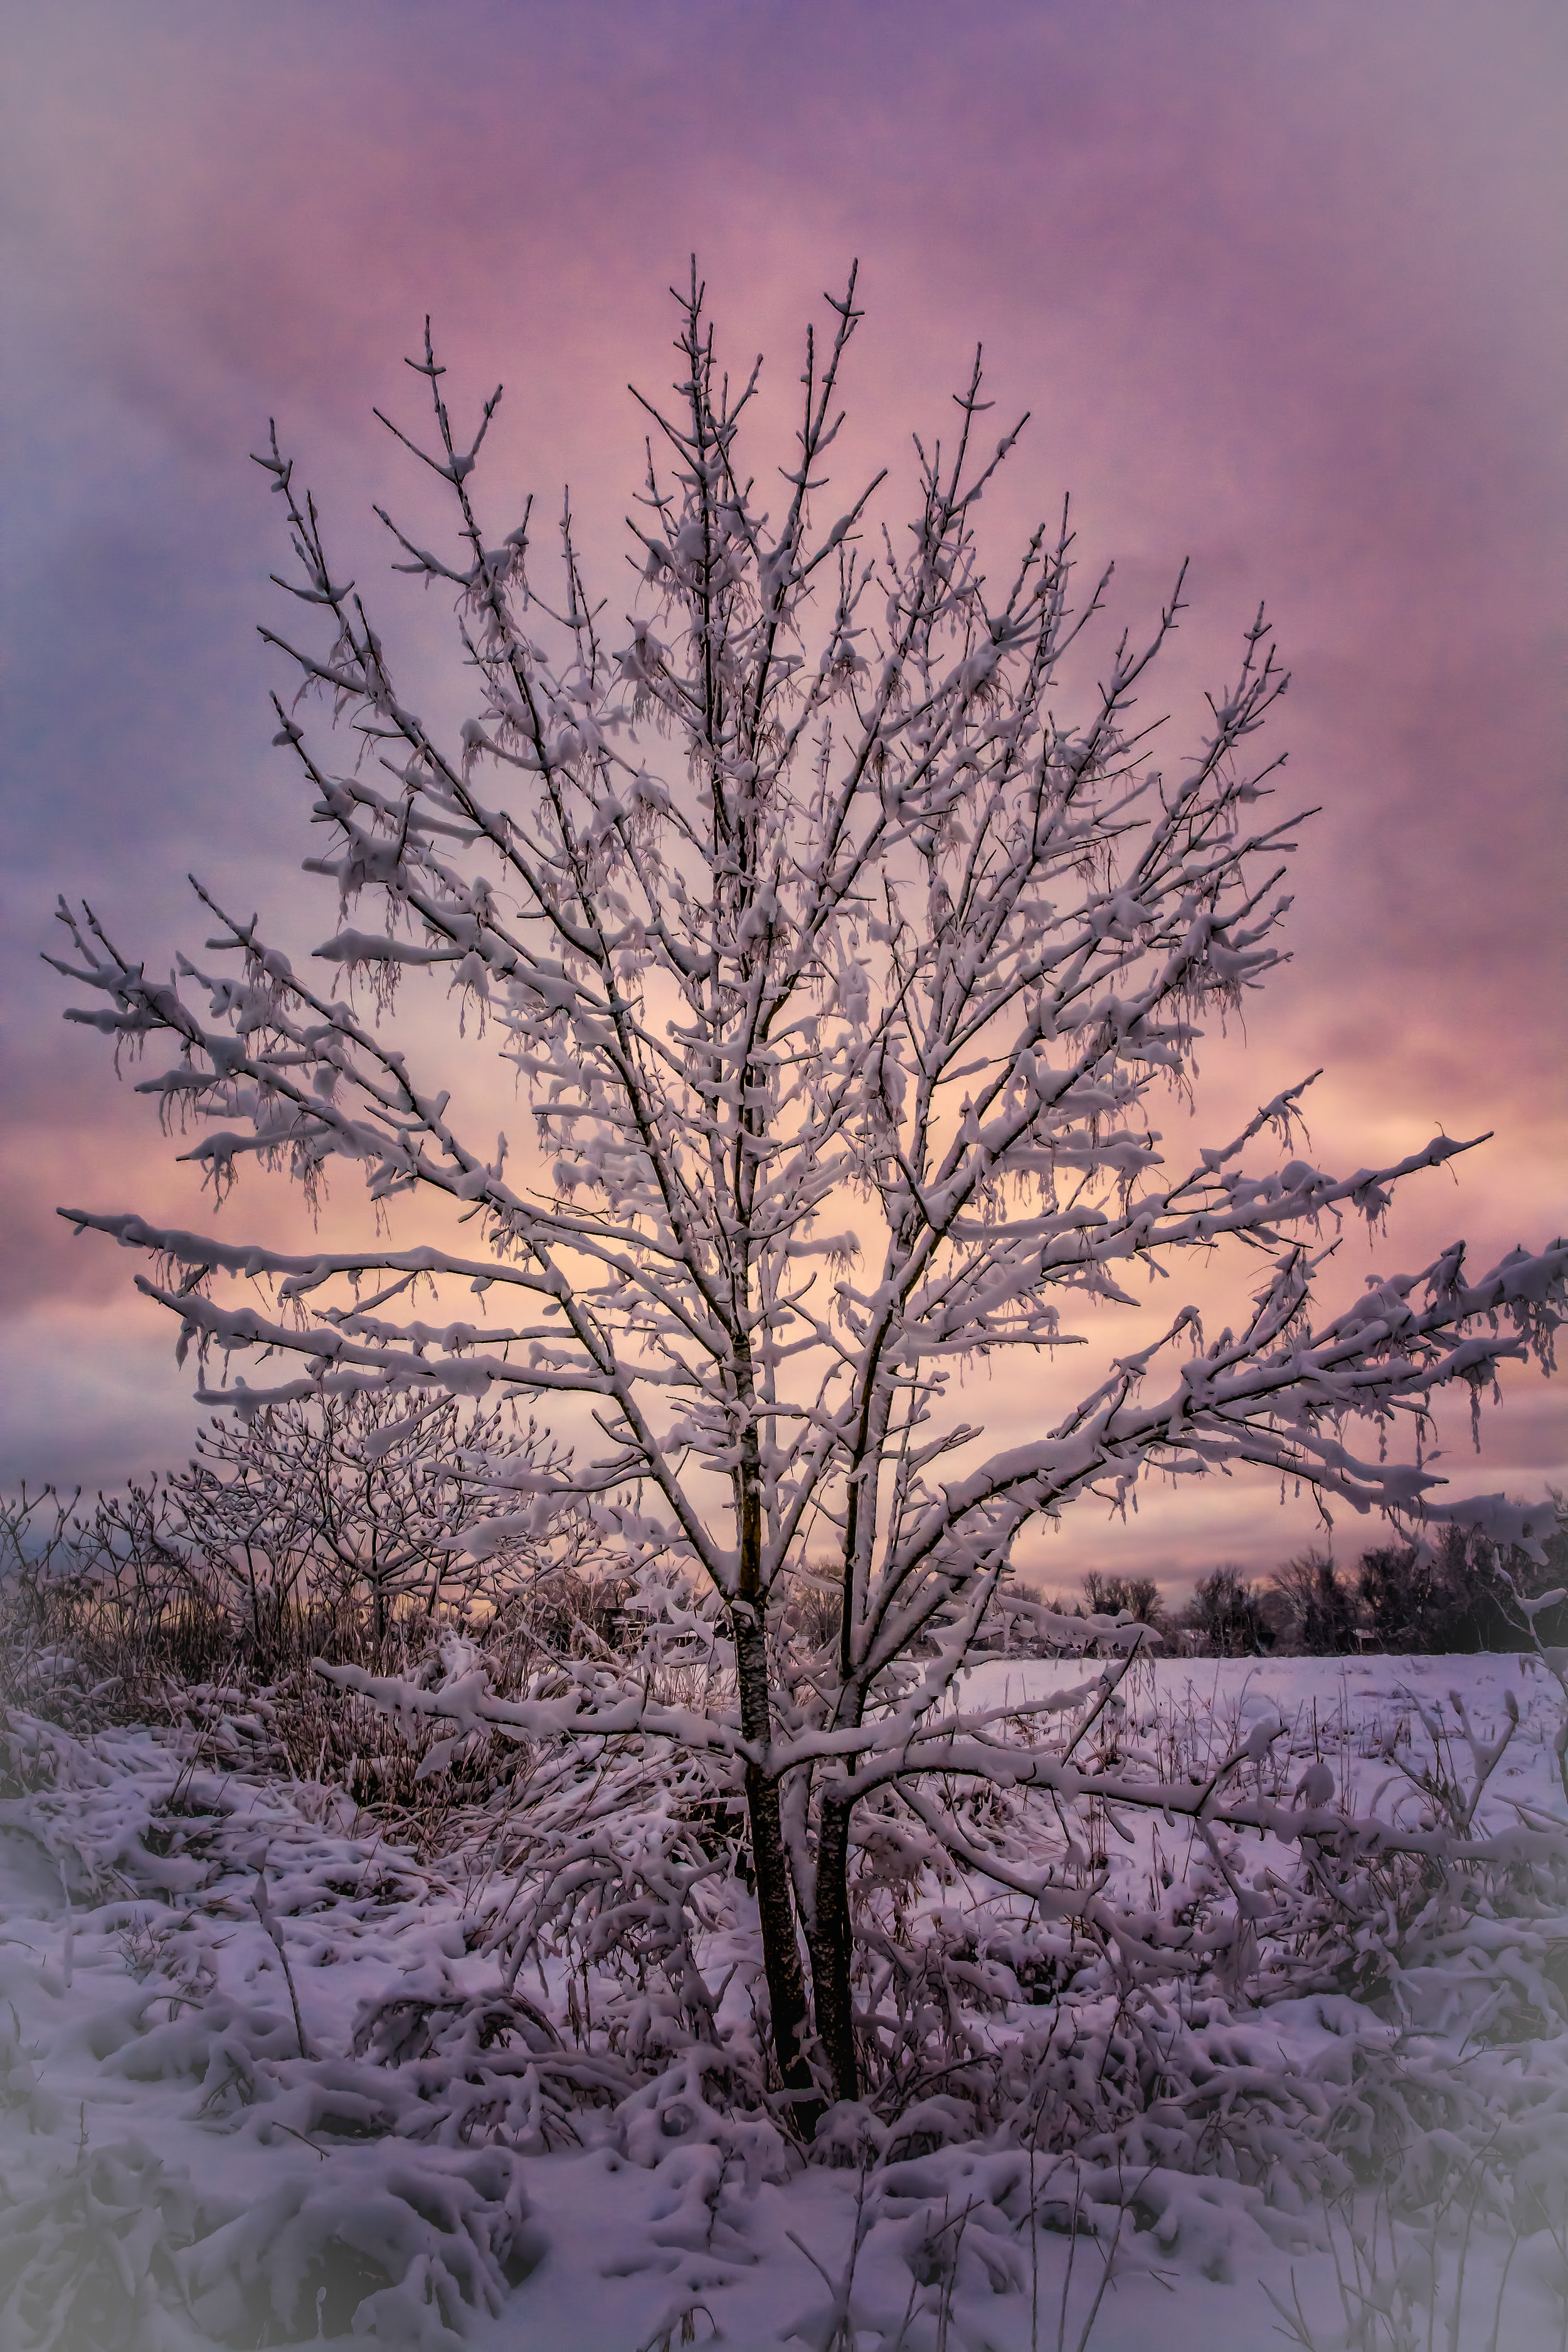 Winter's Dawn - Nikon D7100, 1/200 @ f/8, ISO 800, 22mm - See the poem, Winter's Dawn in the Poetry Section!